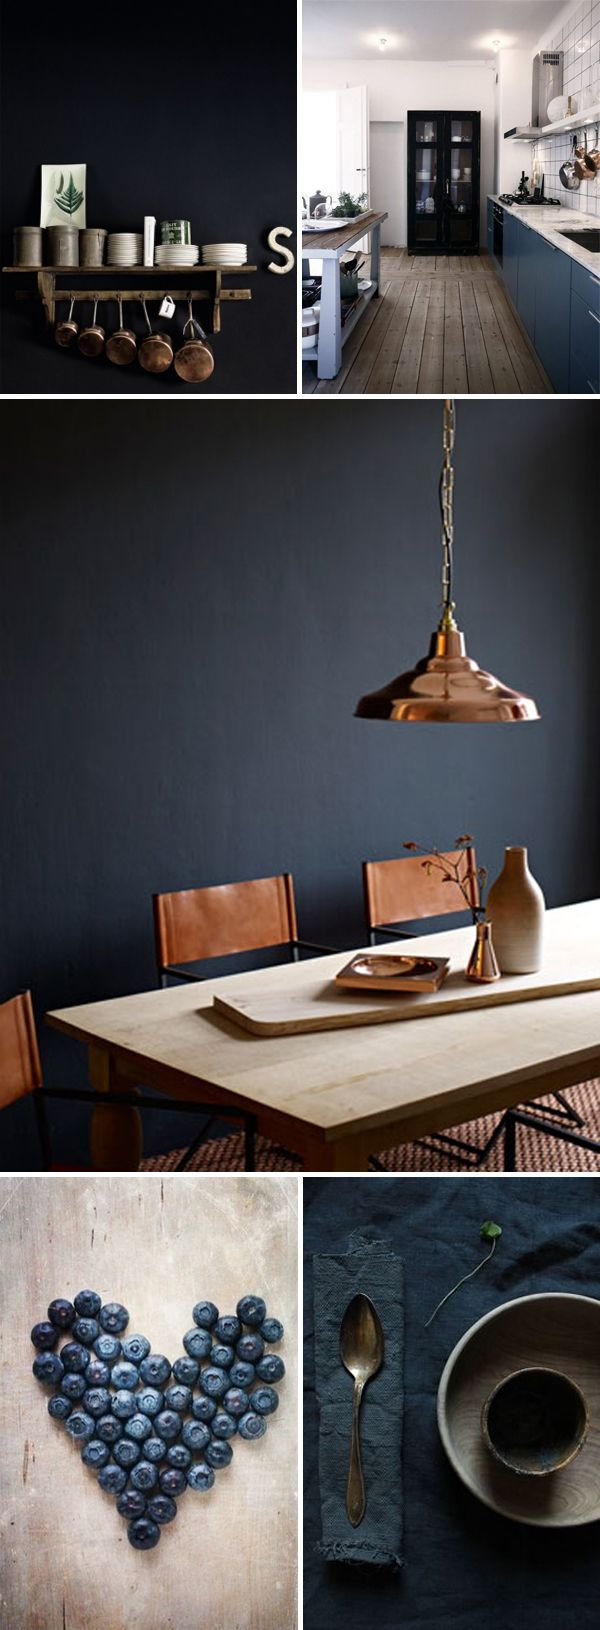 Feeling Blue | Fairly Light | interior inspiration blog | creative home decorating | event styling